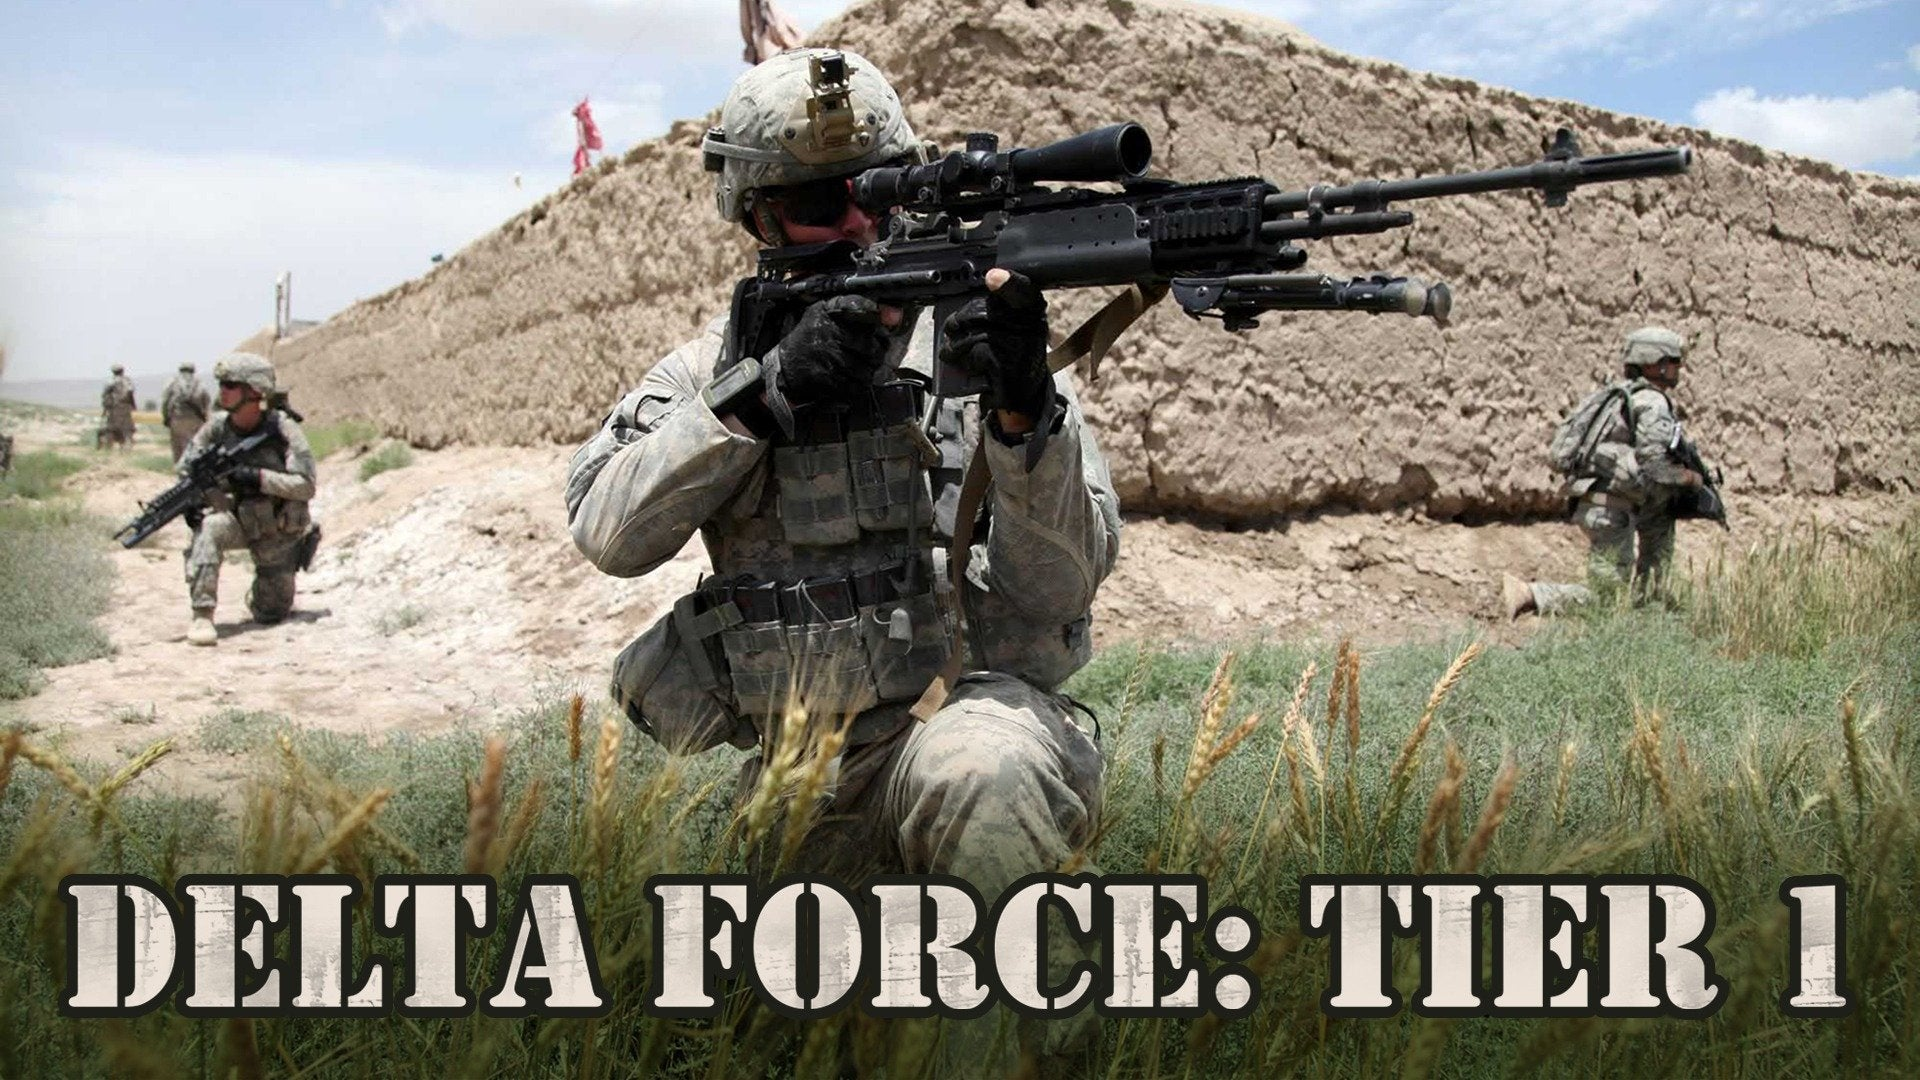 Delta Force: Tier 1